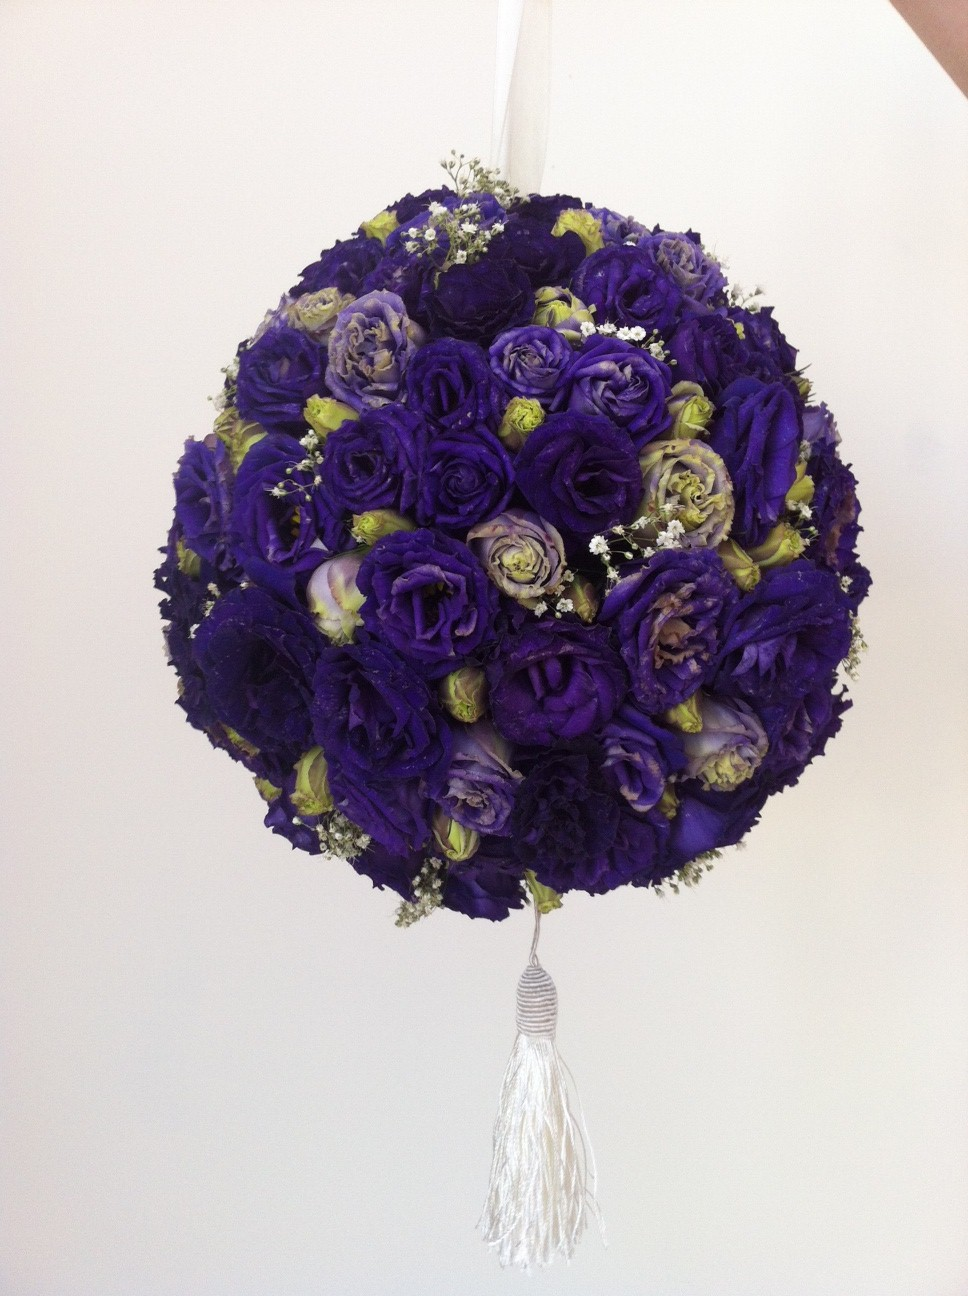 Wedding Amp Events Flower Design Pomander Ball Bouquet